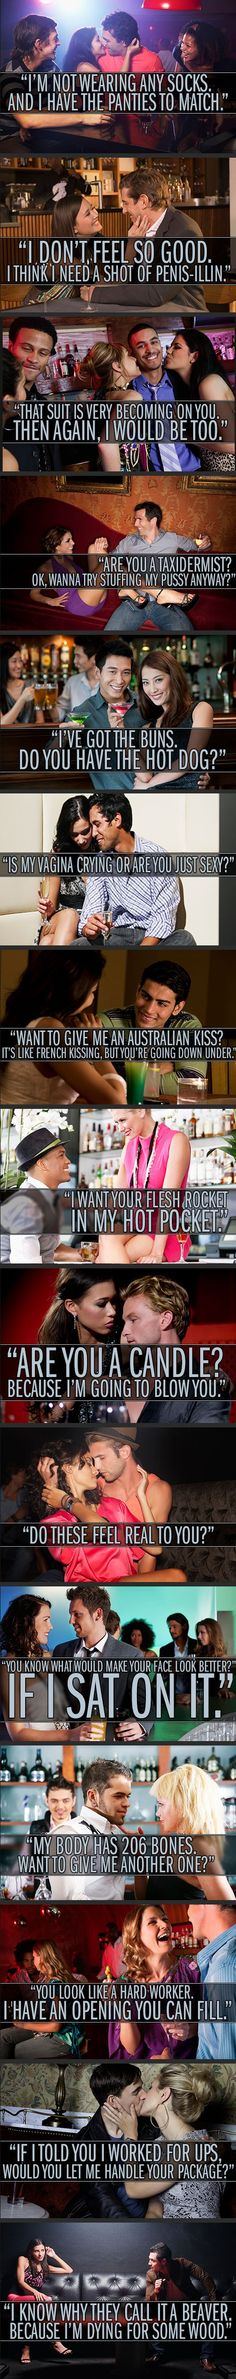 If women used raunchy pickup lines! Love these they are so funny